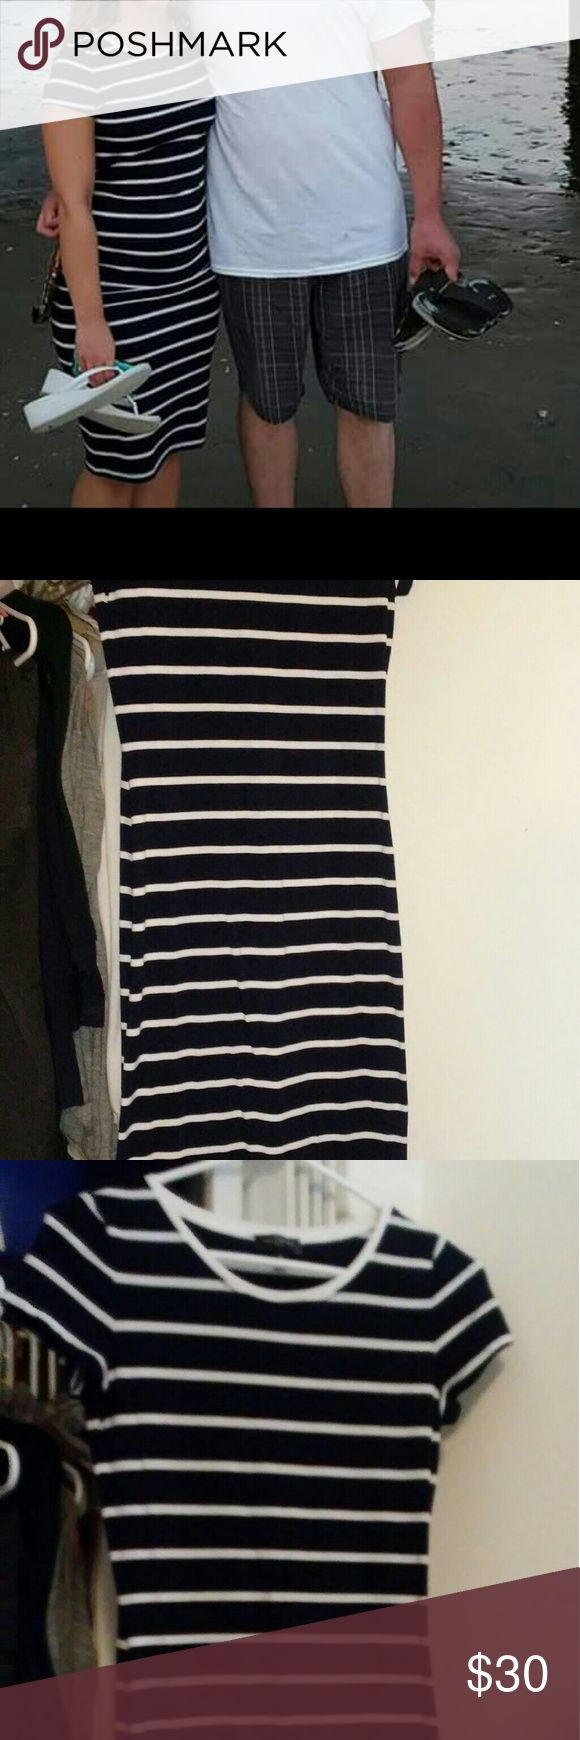 Navy striped petite midi dress Form fitting. Worn once and in great condition. Size xsmall petite but is very stretchy material so would fit anywhere from size 2-8. (For reference I am 32-26-38 & 5 ft tall. The dress is a little tighter around my hips where I am most curvy but not too tight. The dress is well made from The Limited and falls a little below my knees.) Light weight material and is not see through. The Limited Dresses Midi